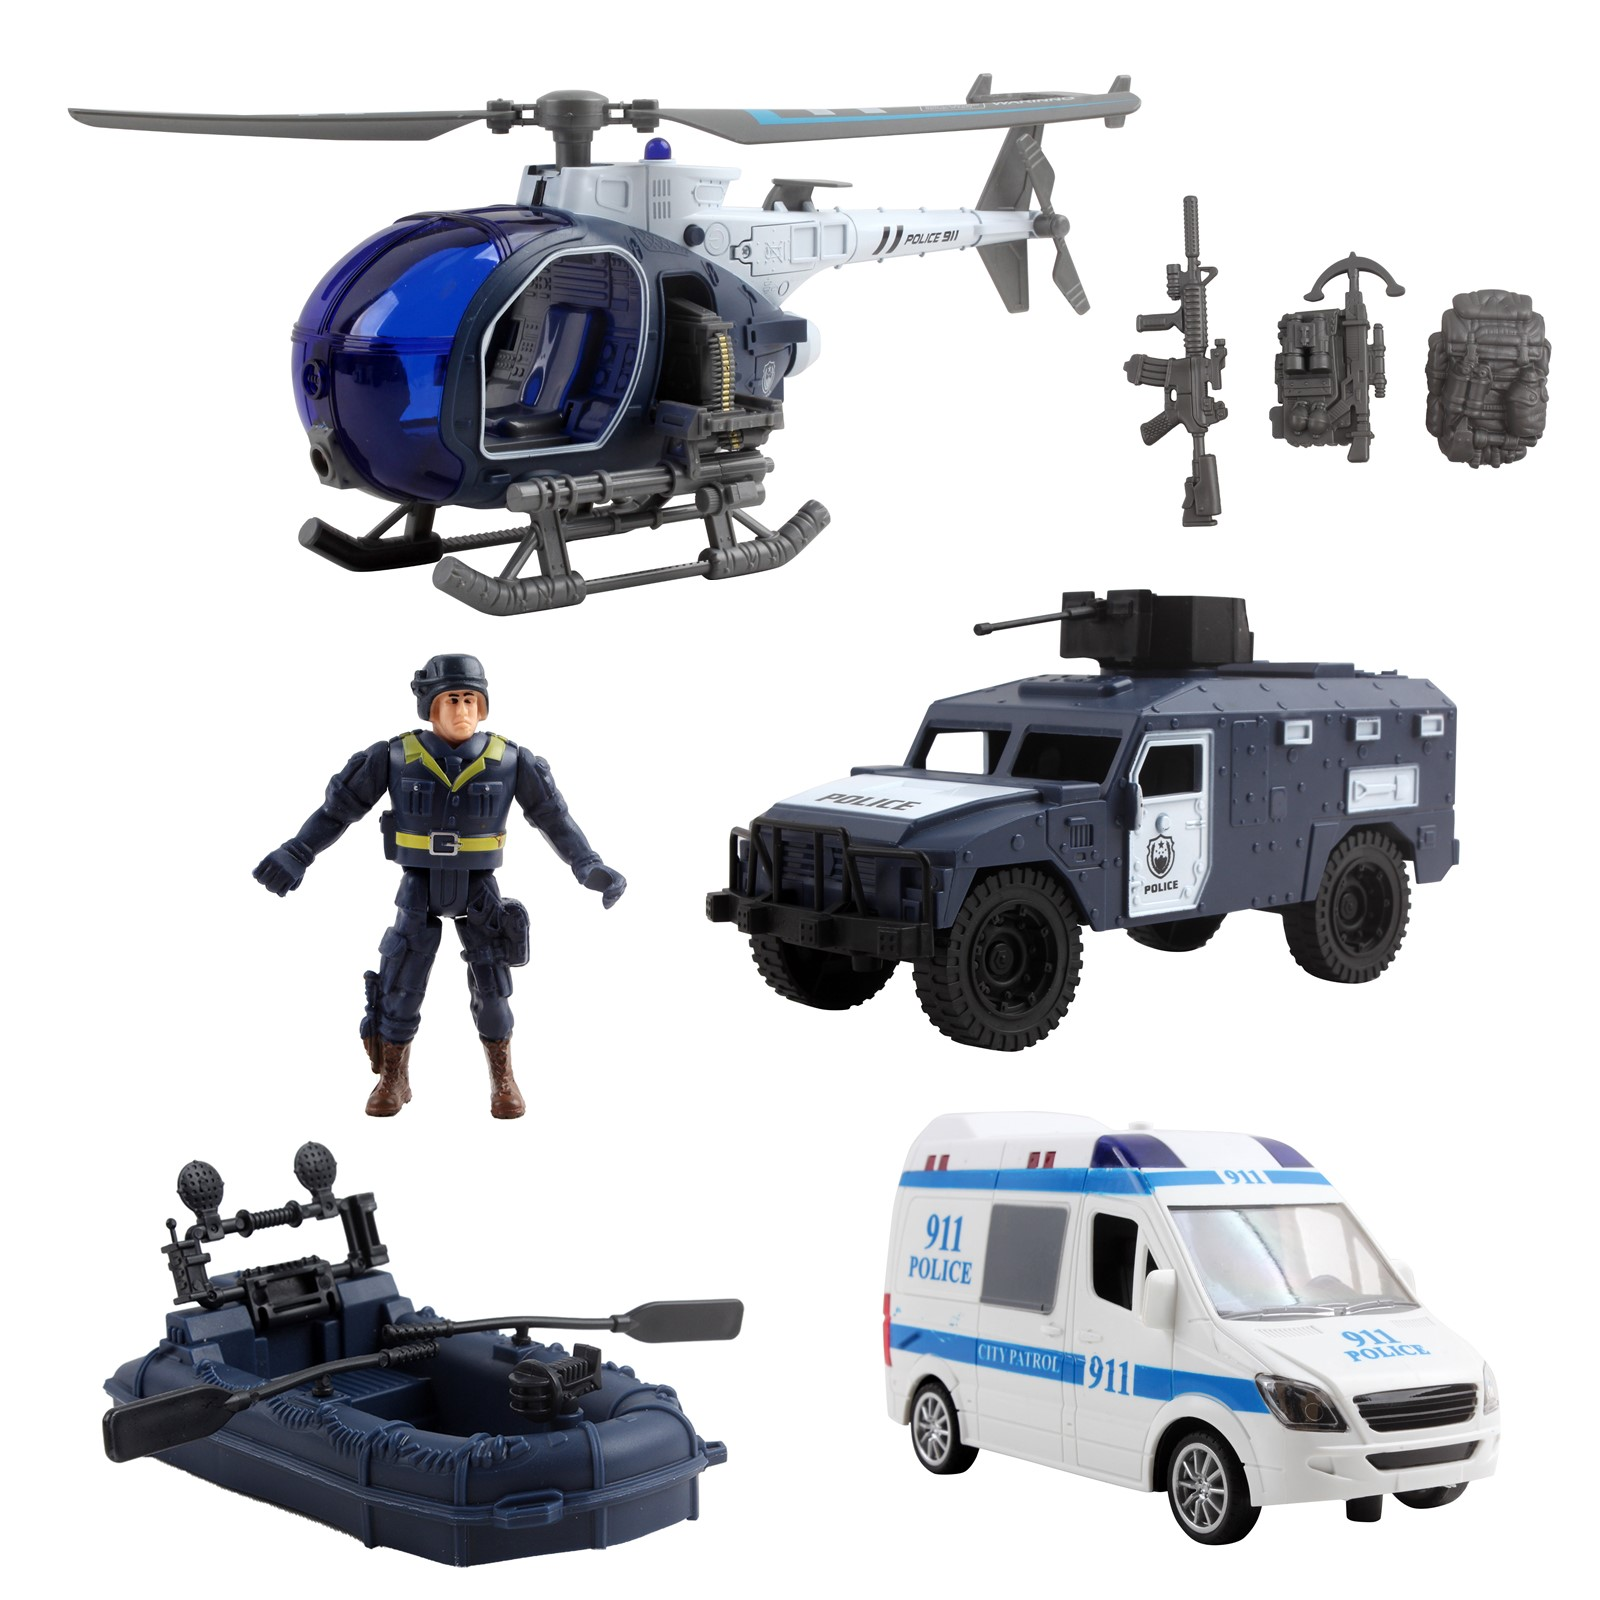 Deluxe Police Special Operations Rescue Series Play Set Includes Armed Helicopter Armored Vehicle Ambulance Water Raft Canoe Soldier And Artillery Perfect Kids Pretend Army Action Toys